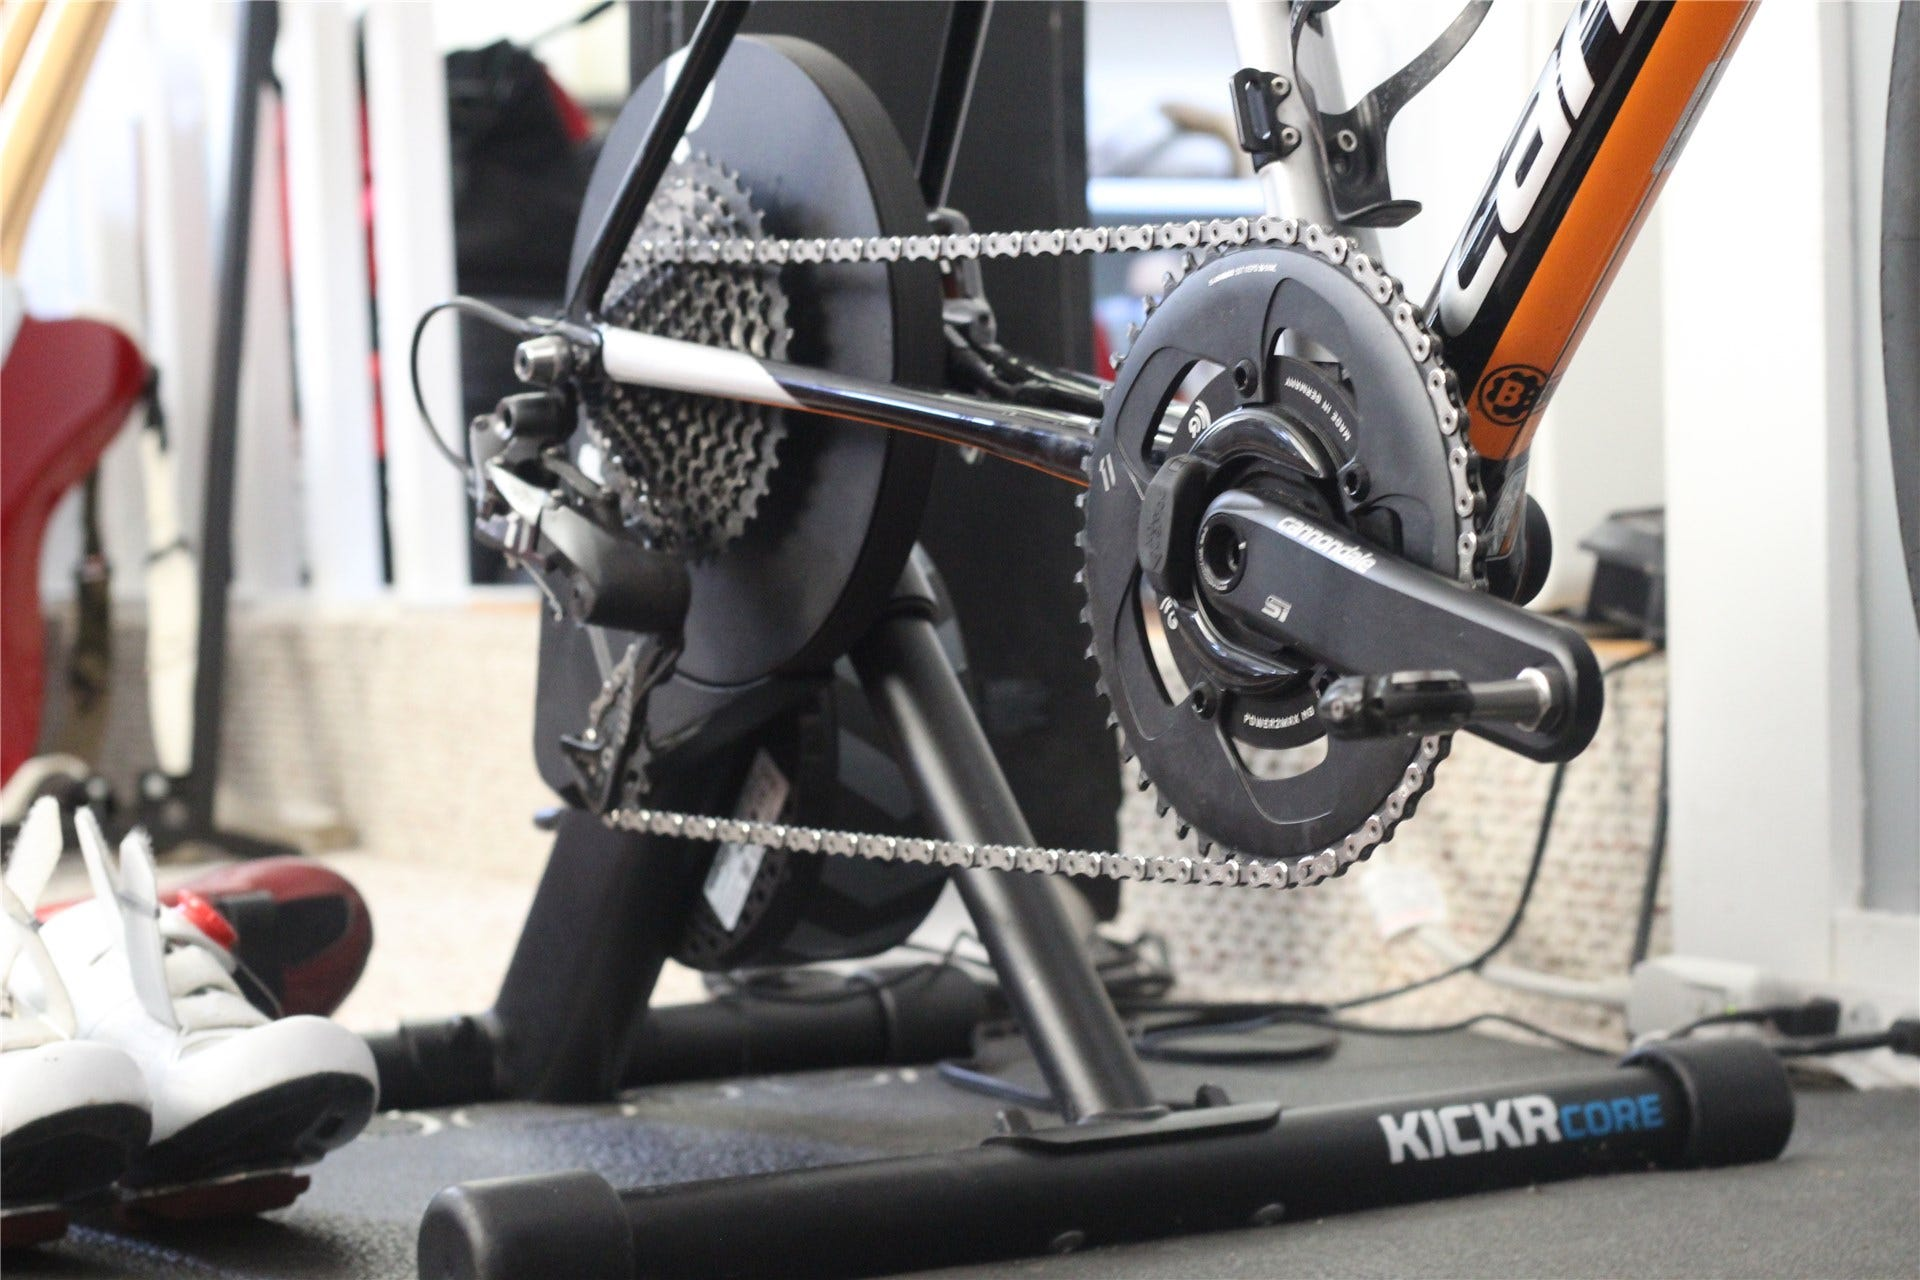 A bike mounted to a direct drive smart trainer, with a spider-based power meter